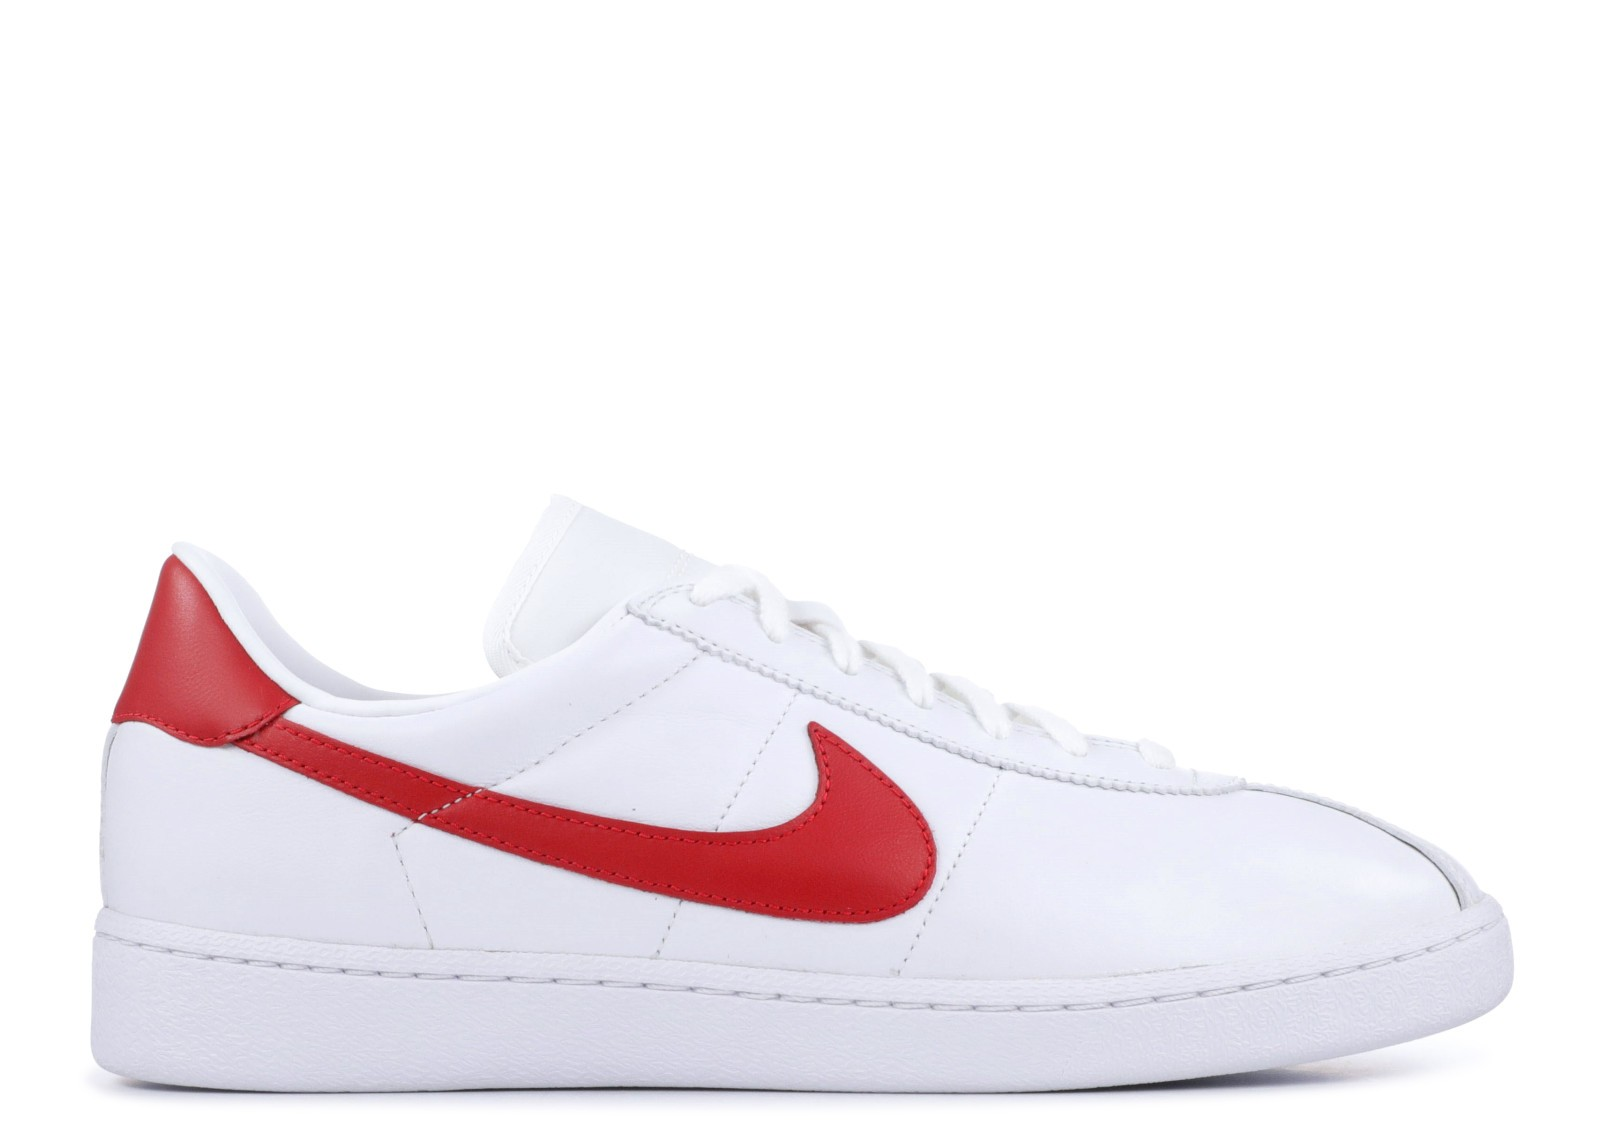 Nike Bruin Leather Bianche/Rosse 826670-160